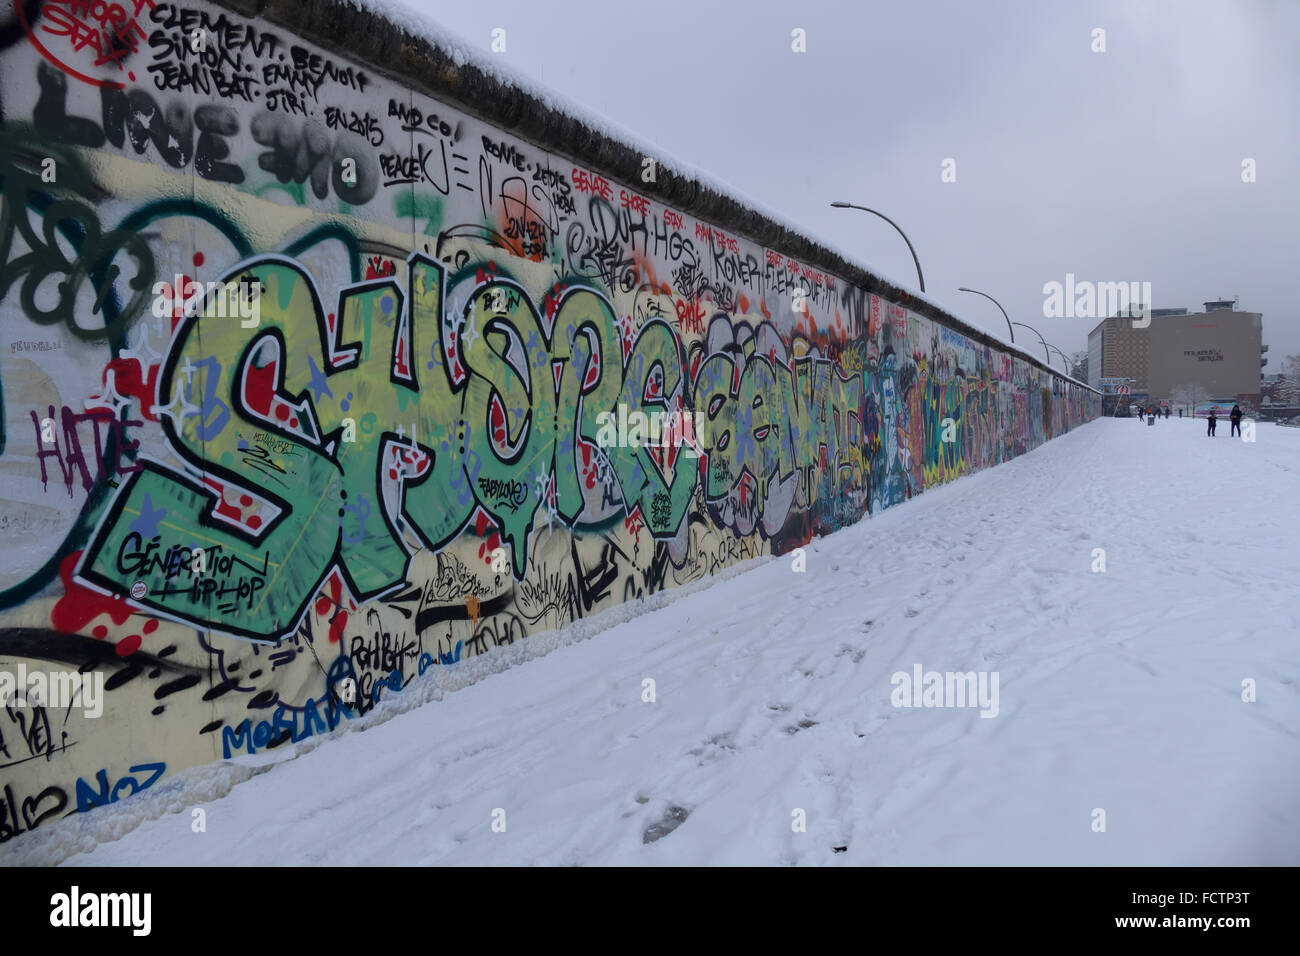 Urban view of Berlin, German capital city, Germany, Europe. East Side Gallery with graffiti art on the Berlin Wall - Stock Image